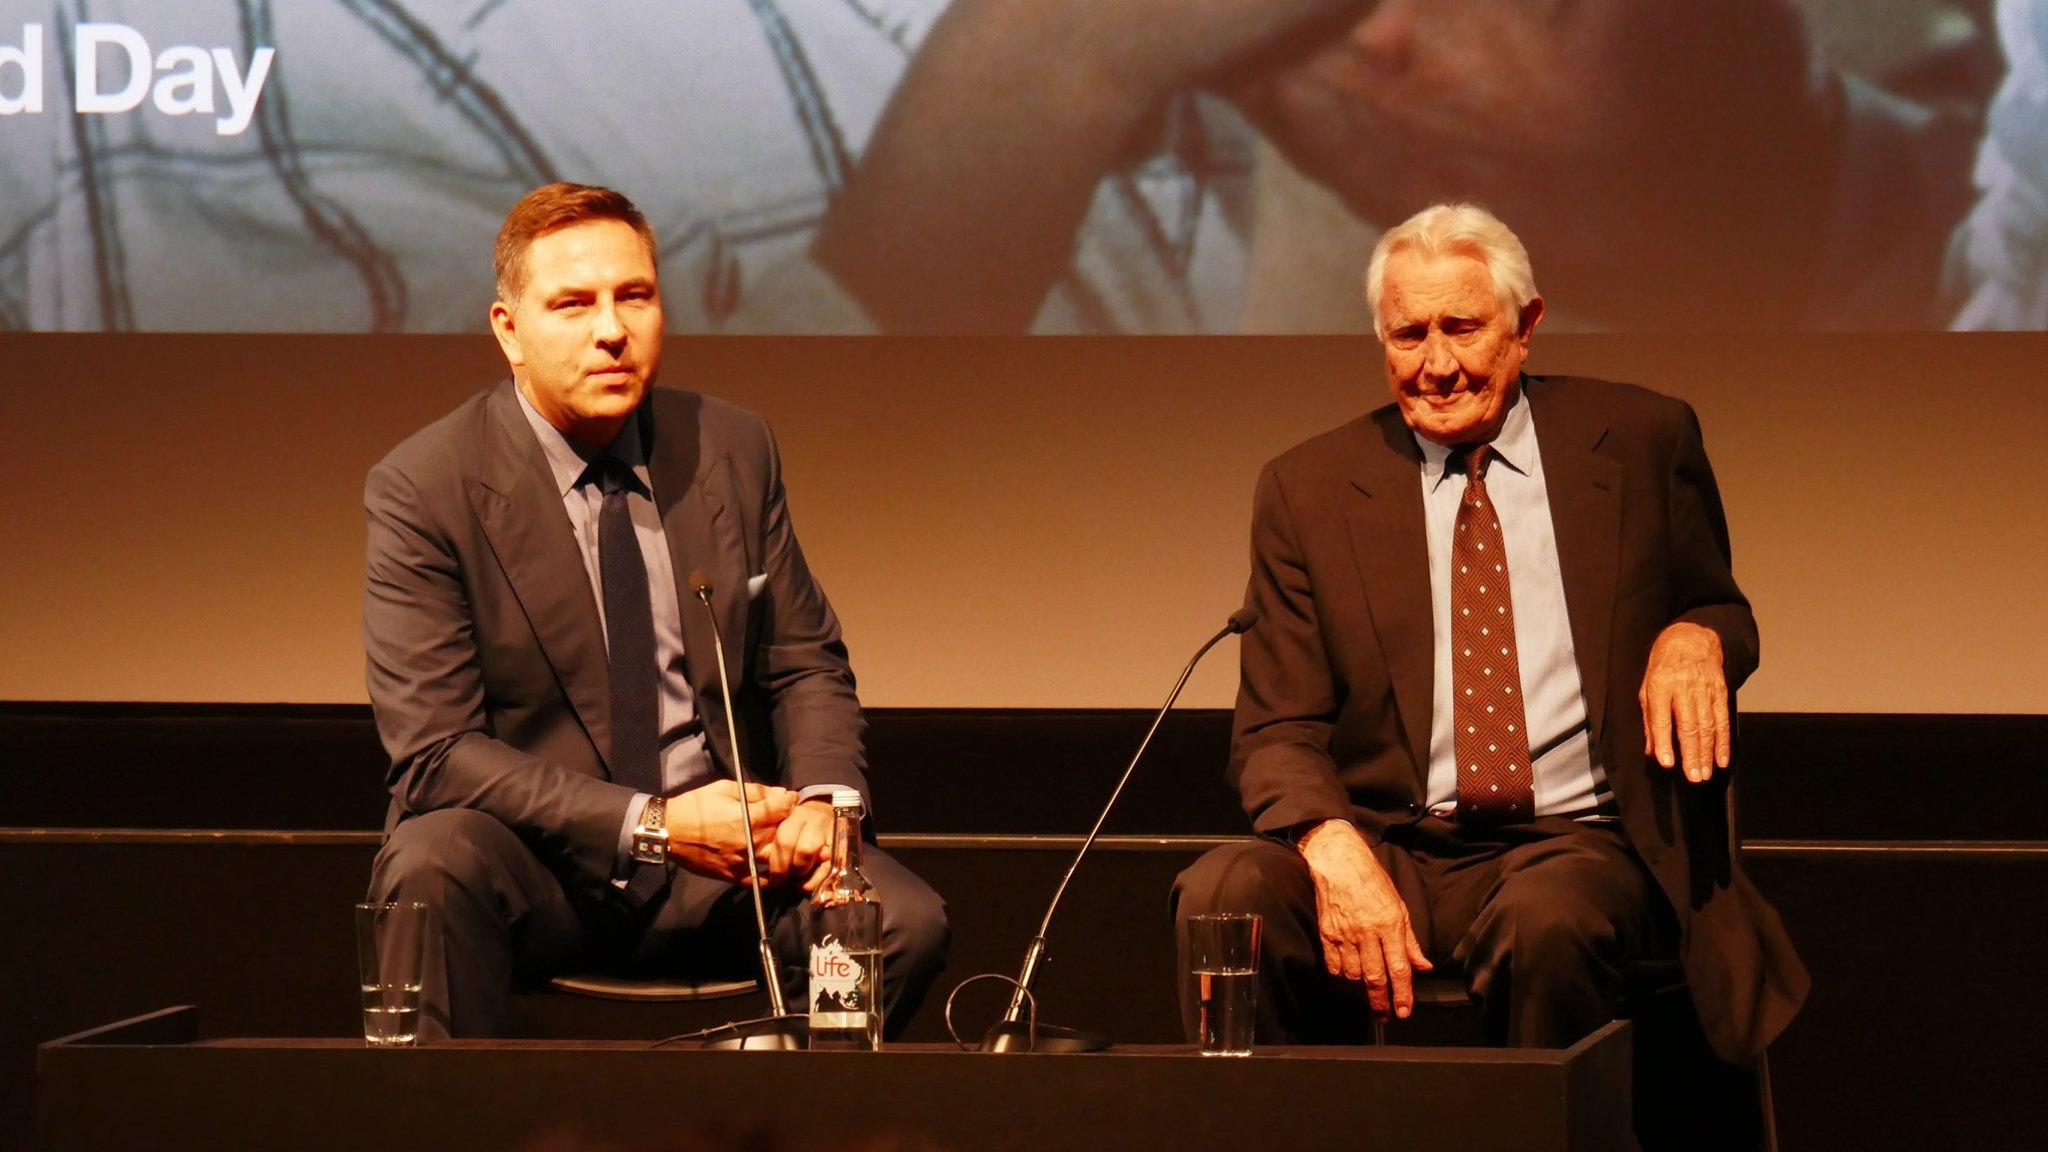 George Lazenby and David Walliams at the BFI